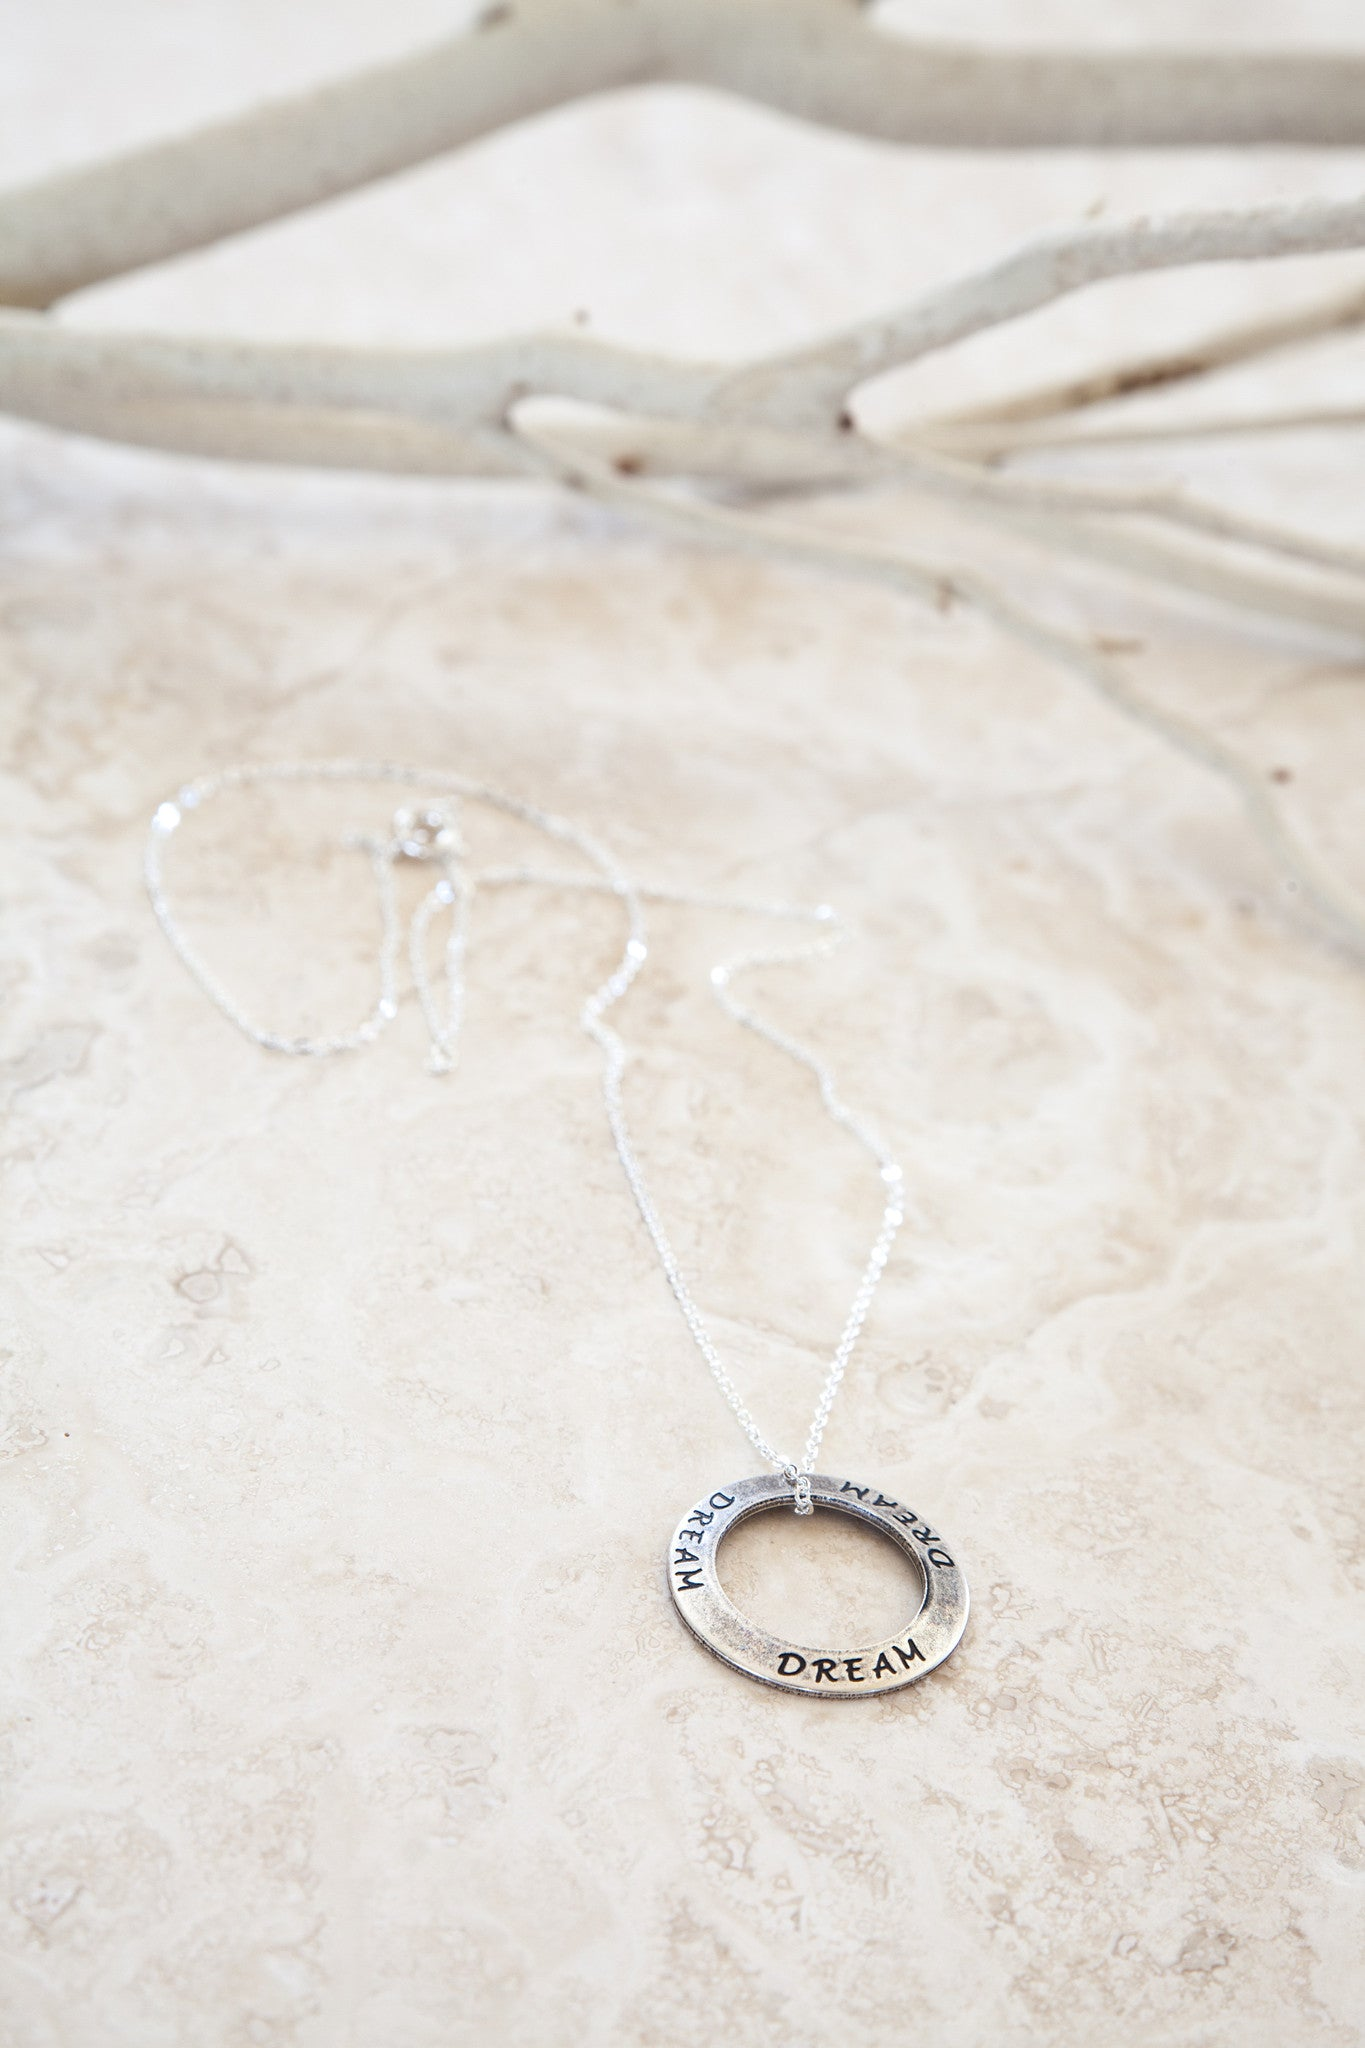 Delicate Sterling Silver and Silver Plated Dream Necklace